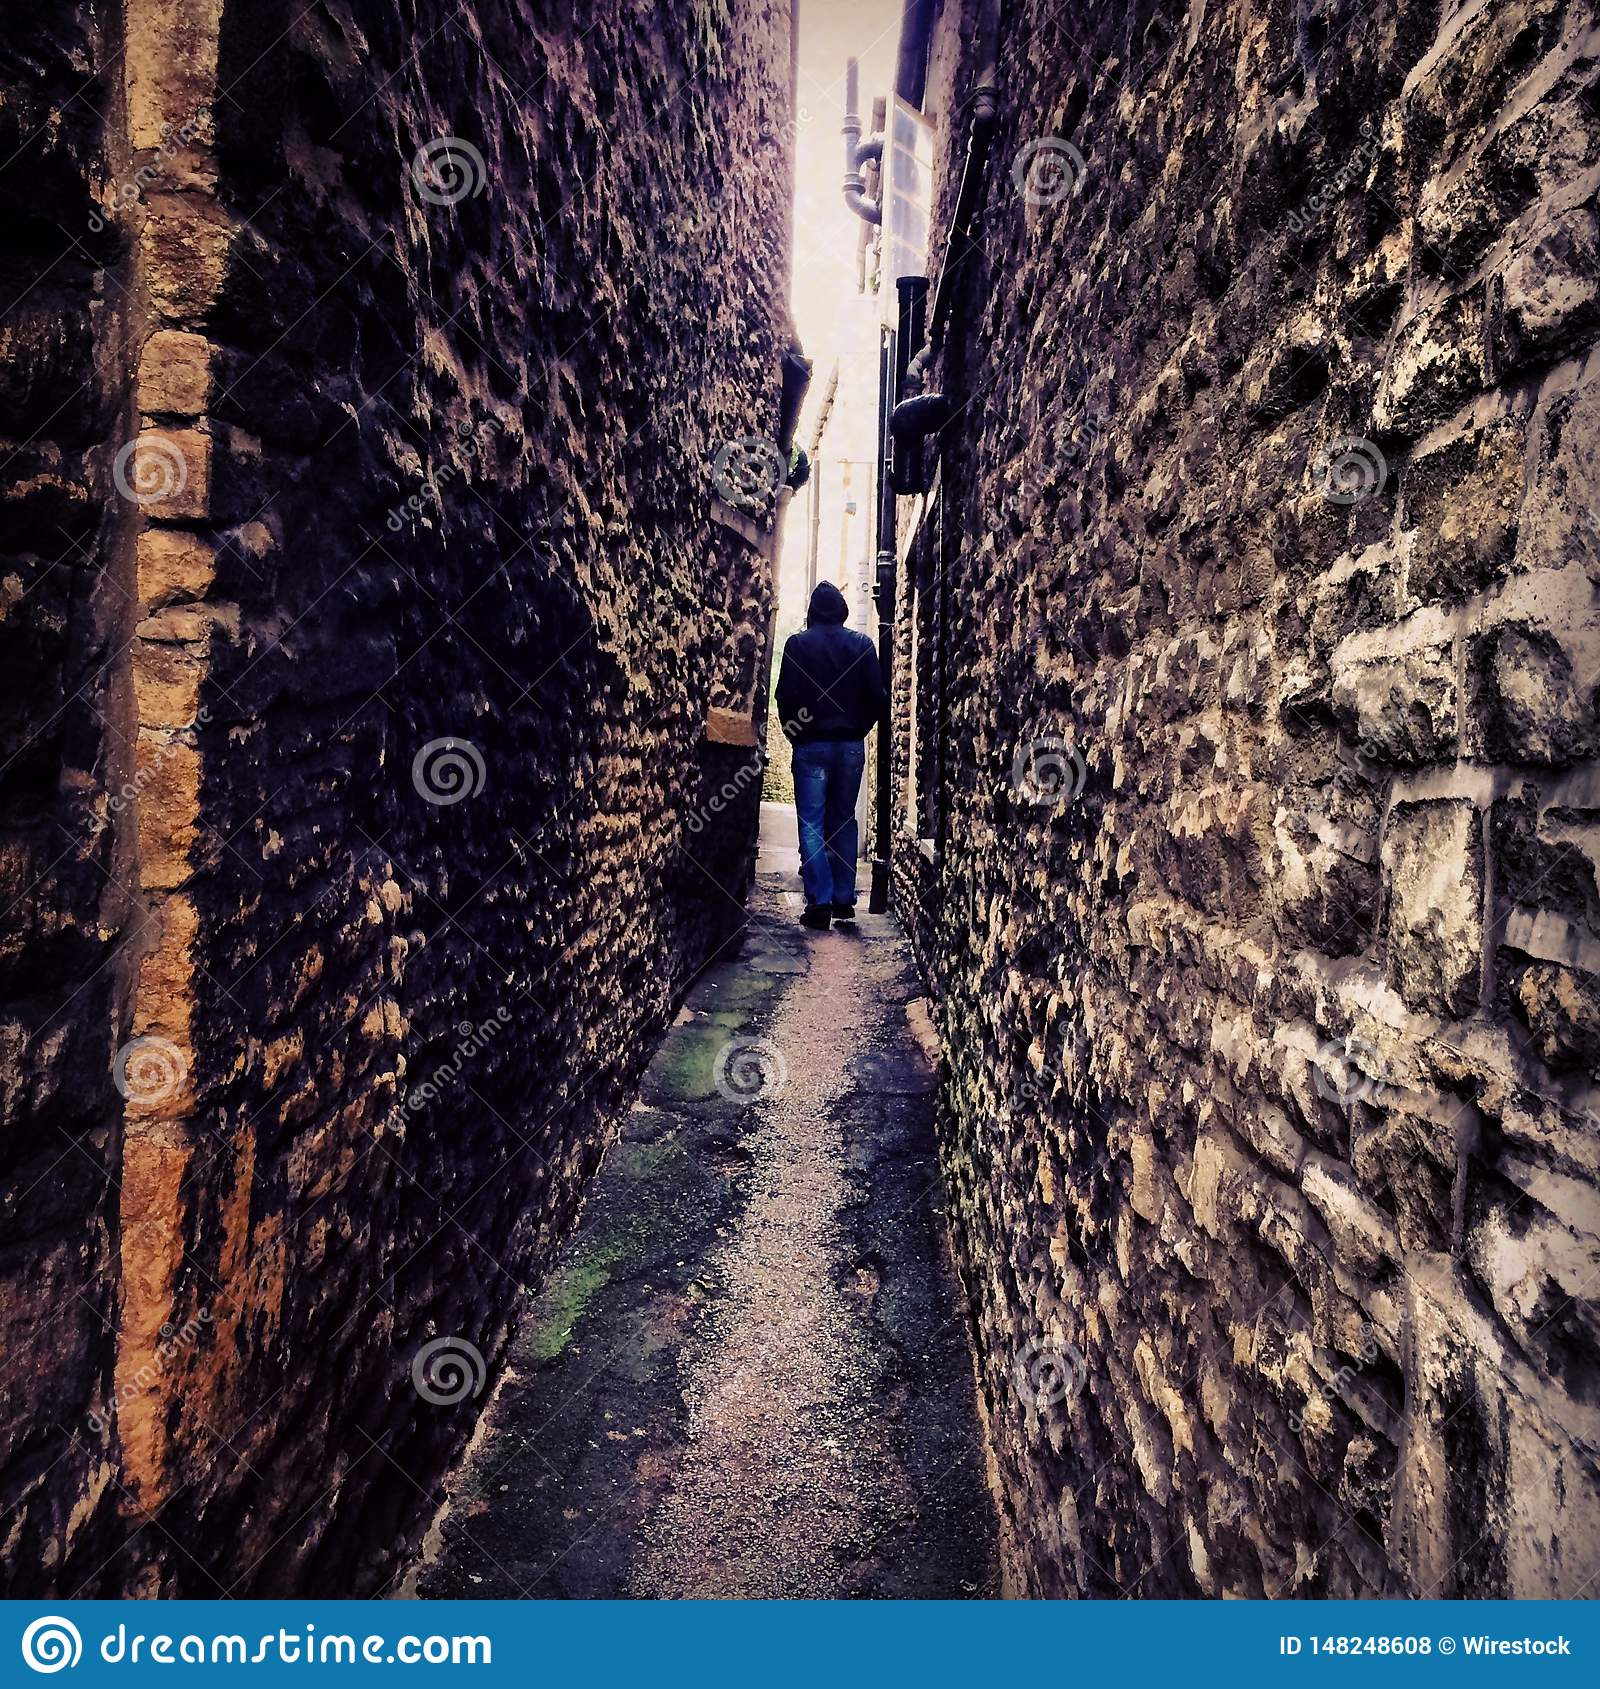 A person standing in a narrow pathway between two brick walls